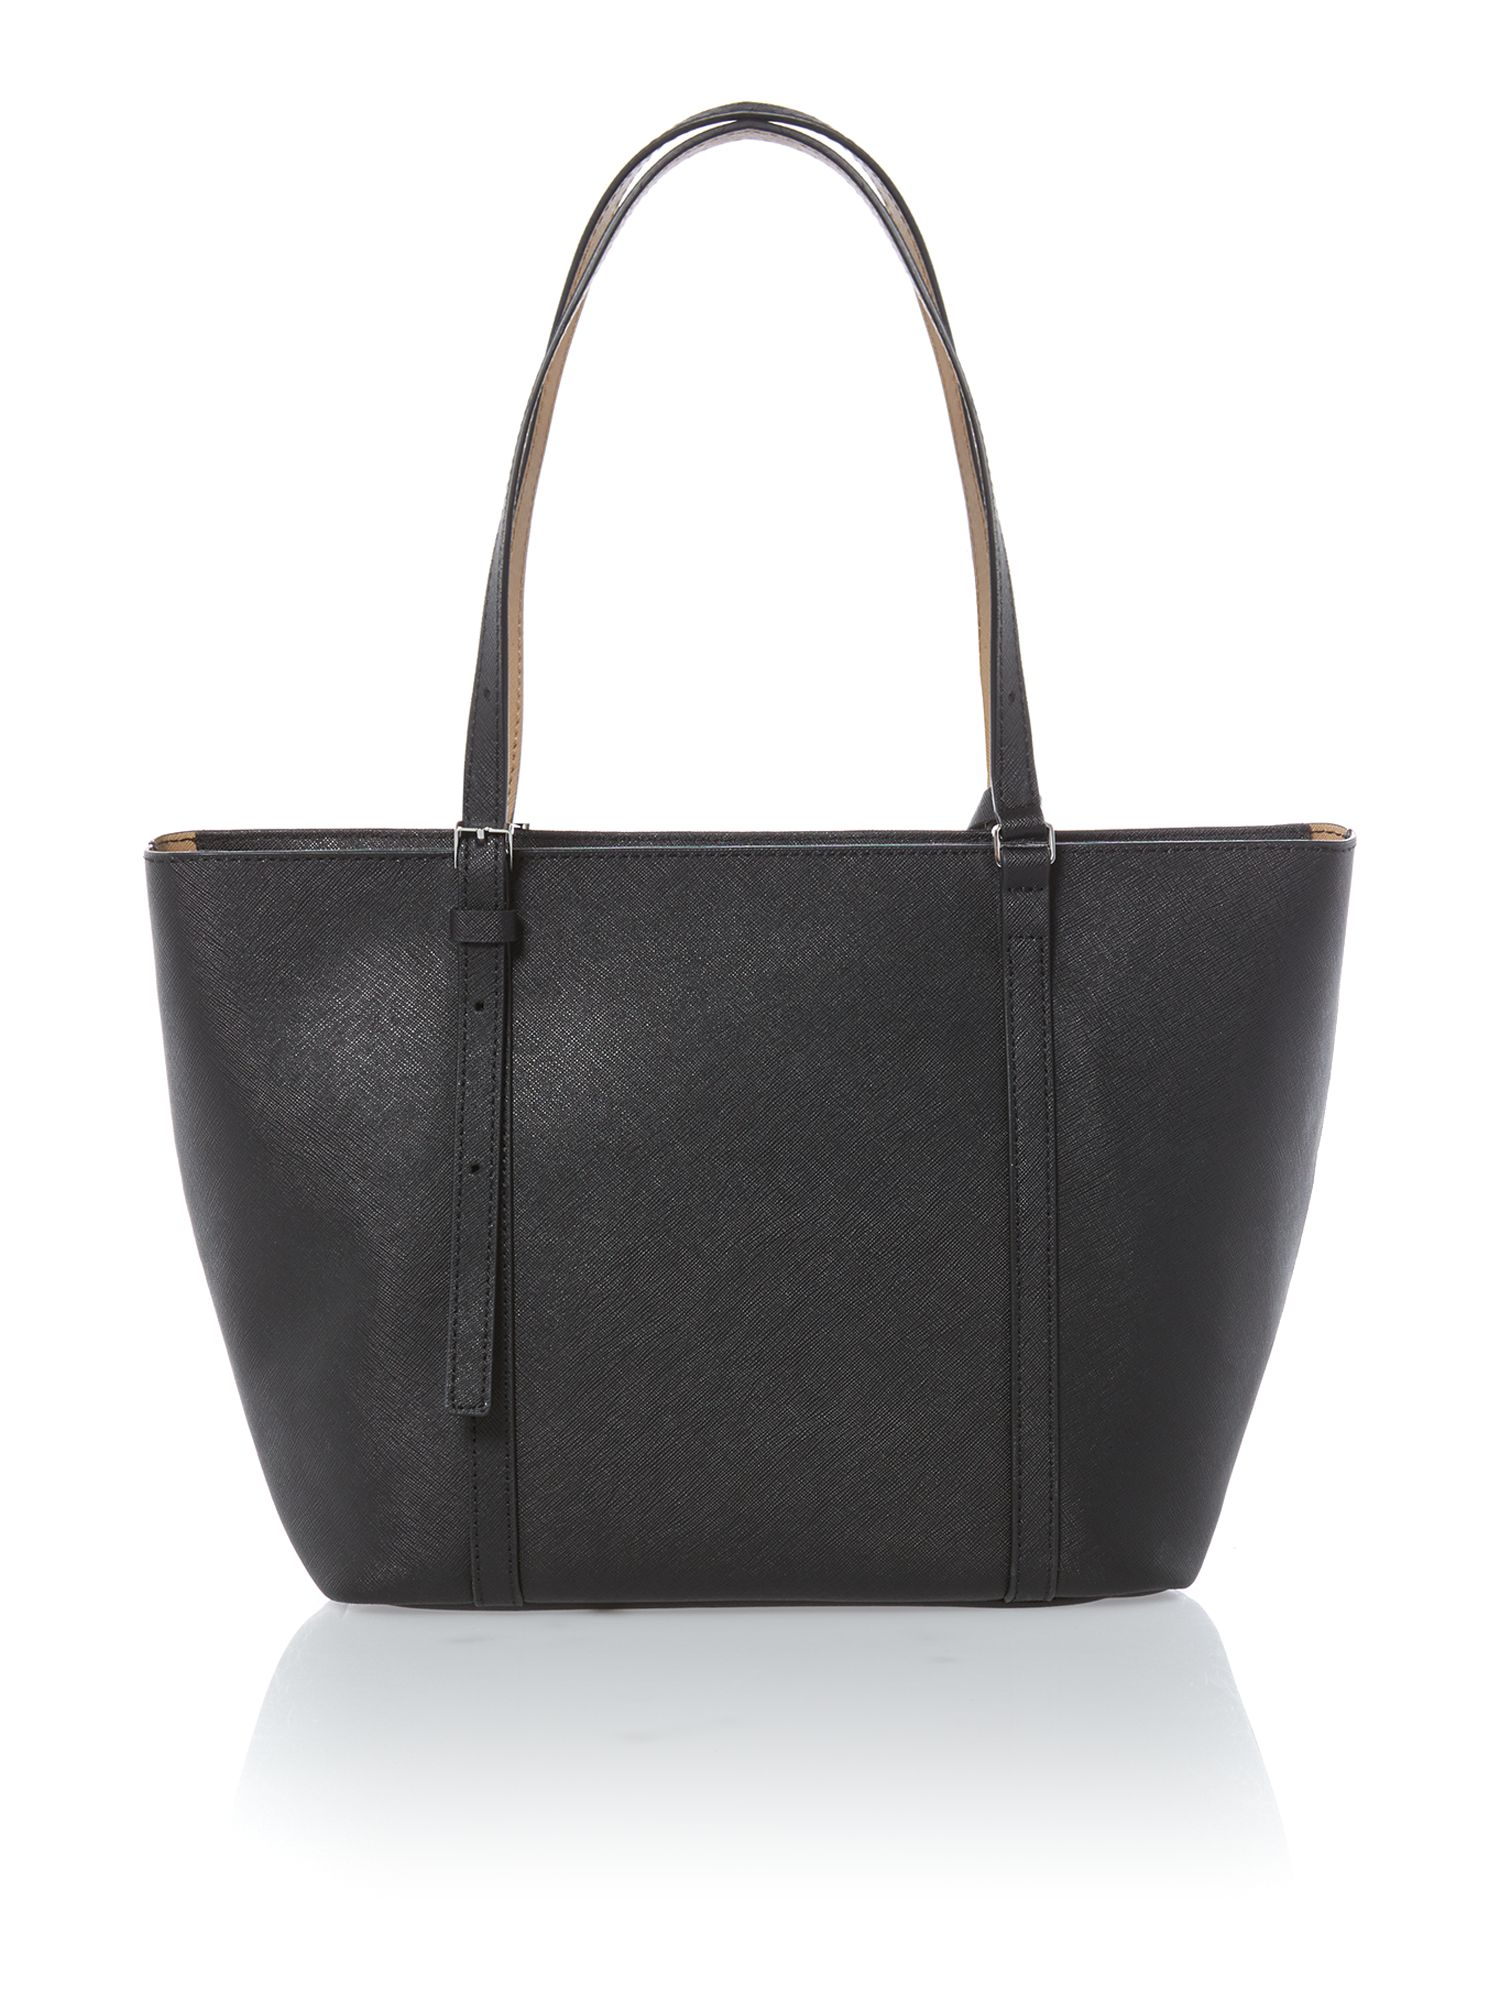 Sofie black medium tote bag